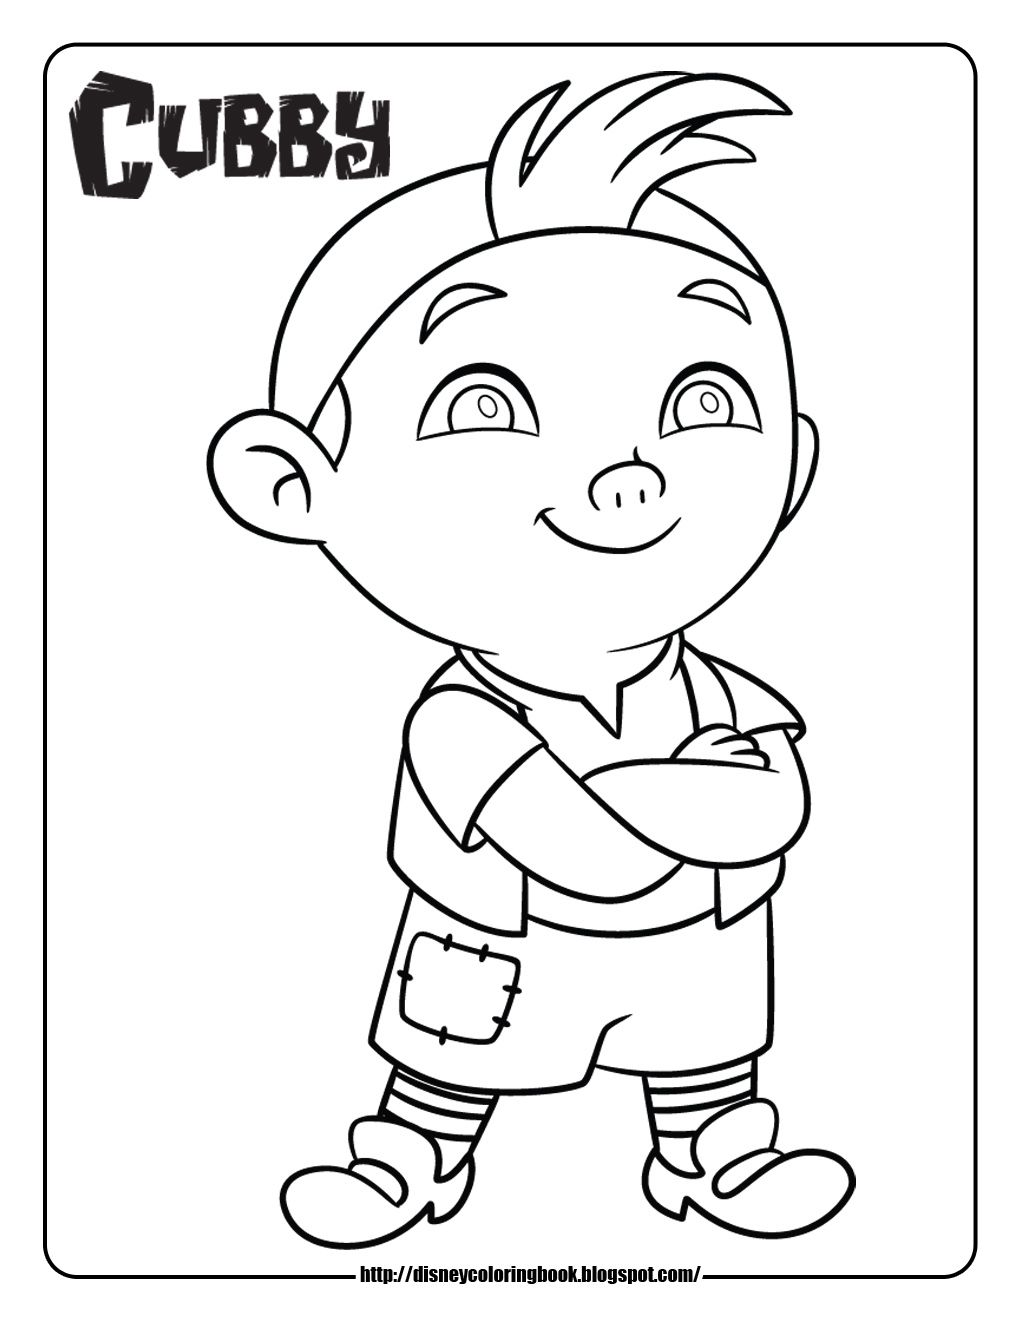 Free disney junior colouring pages - Disney Coloring Pages And Sheets For Kids Jake And The Neverland Pirates 1 Free